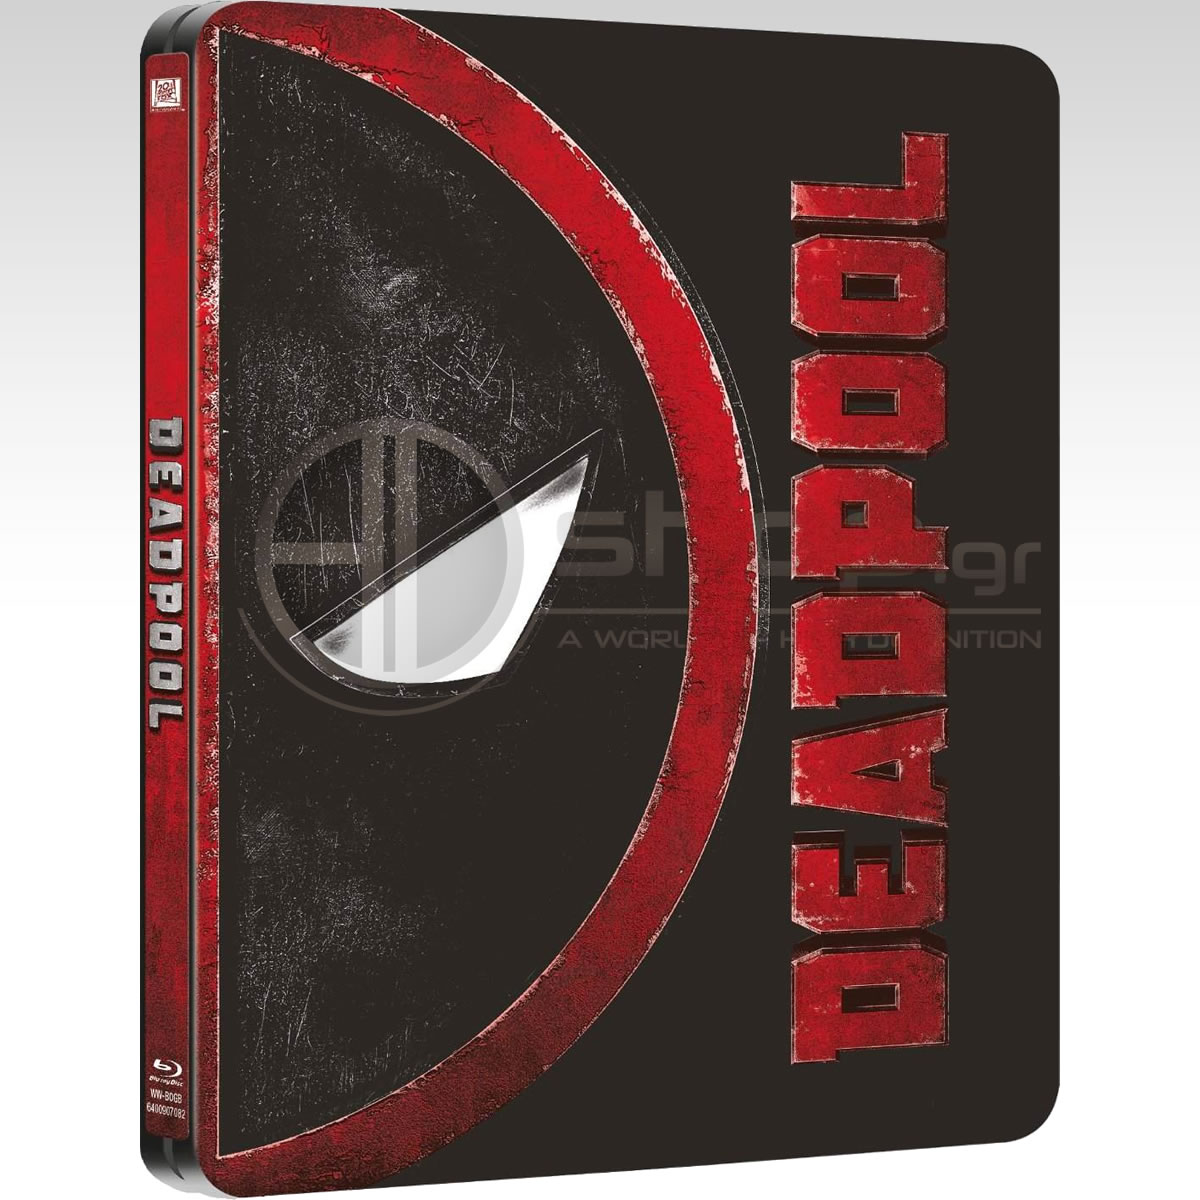 DEADPOOL - Limited Edition Steelbook (BLU-RAY)